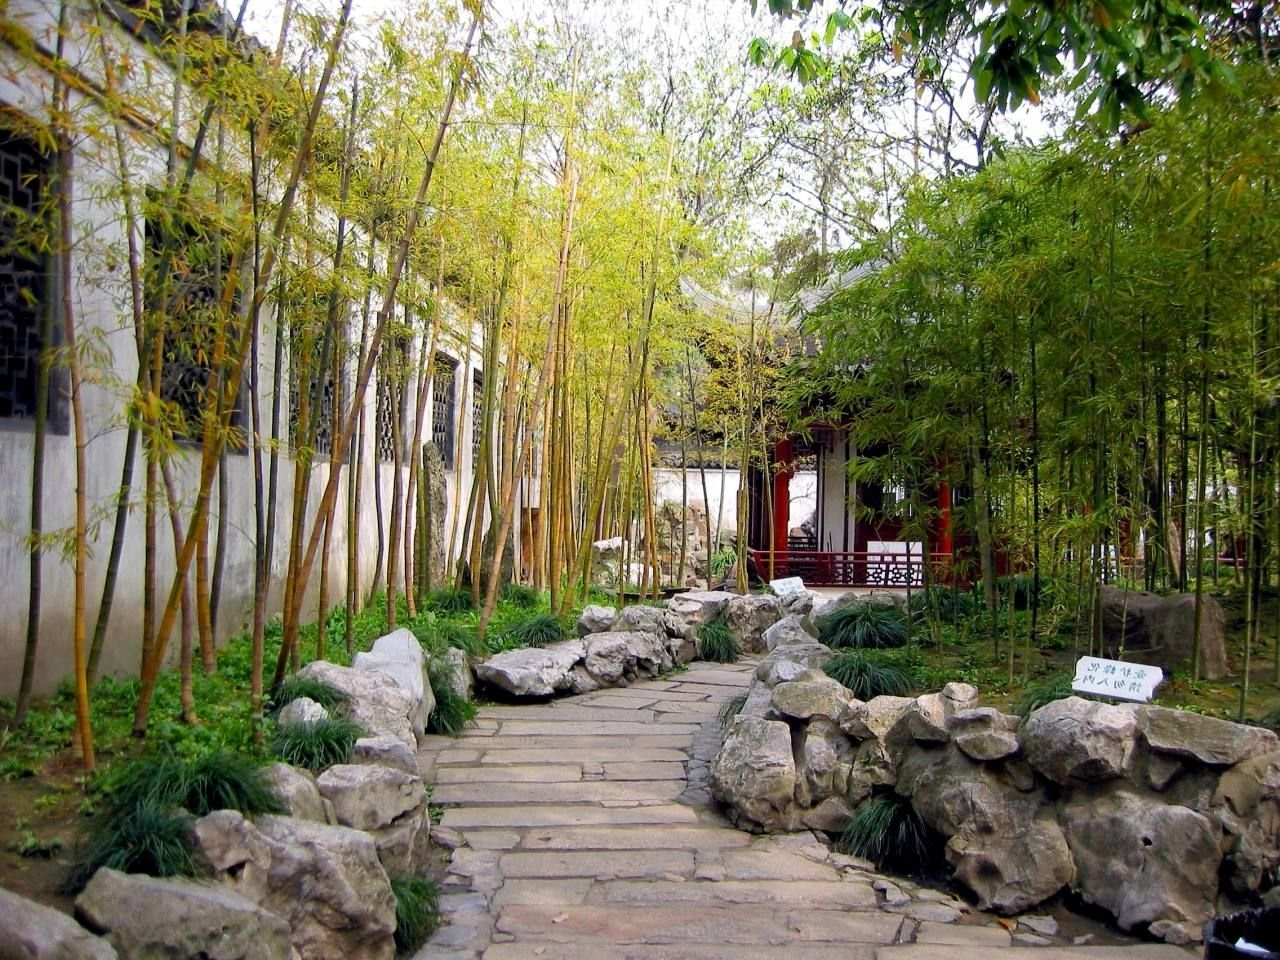 chinese bamboo garden in modern design chinese garden inspiration for spot design studio www. Black Bedroom Furniture Sets. Home Design Ideas